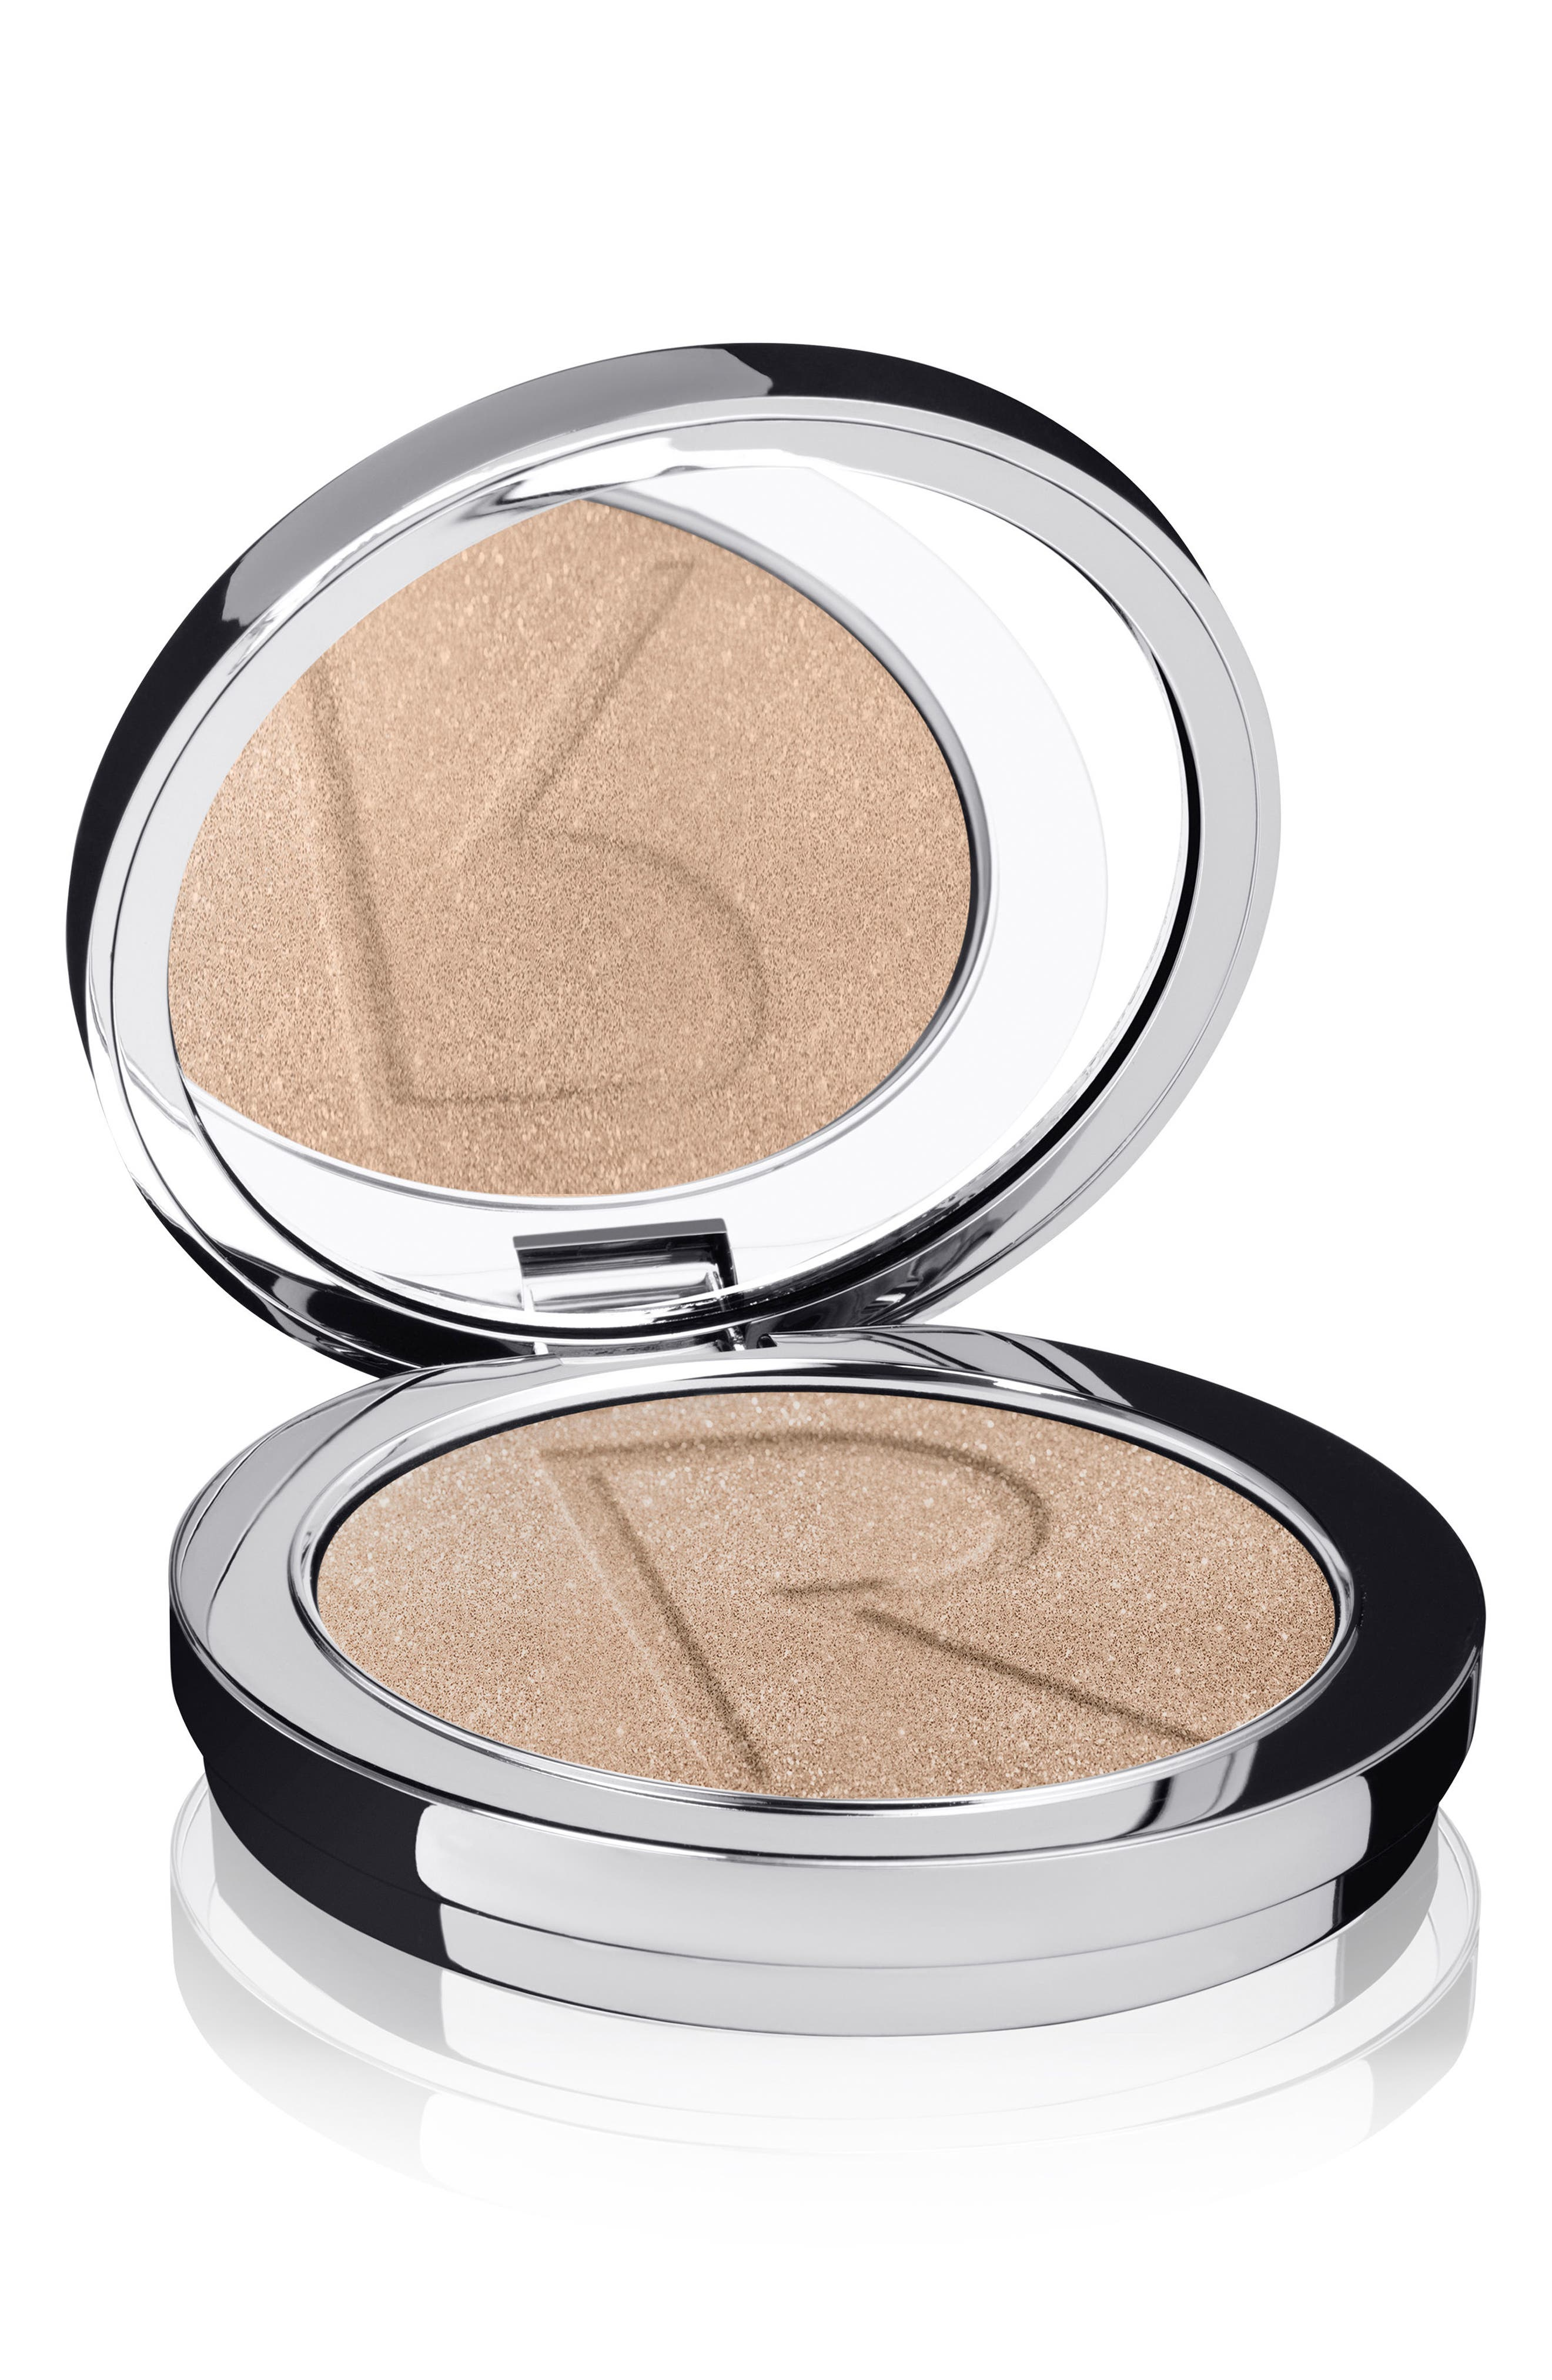 SPACE.NK.apothecary Rodial Instaglam™ Deluxe Highlighting Powder Compact